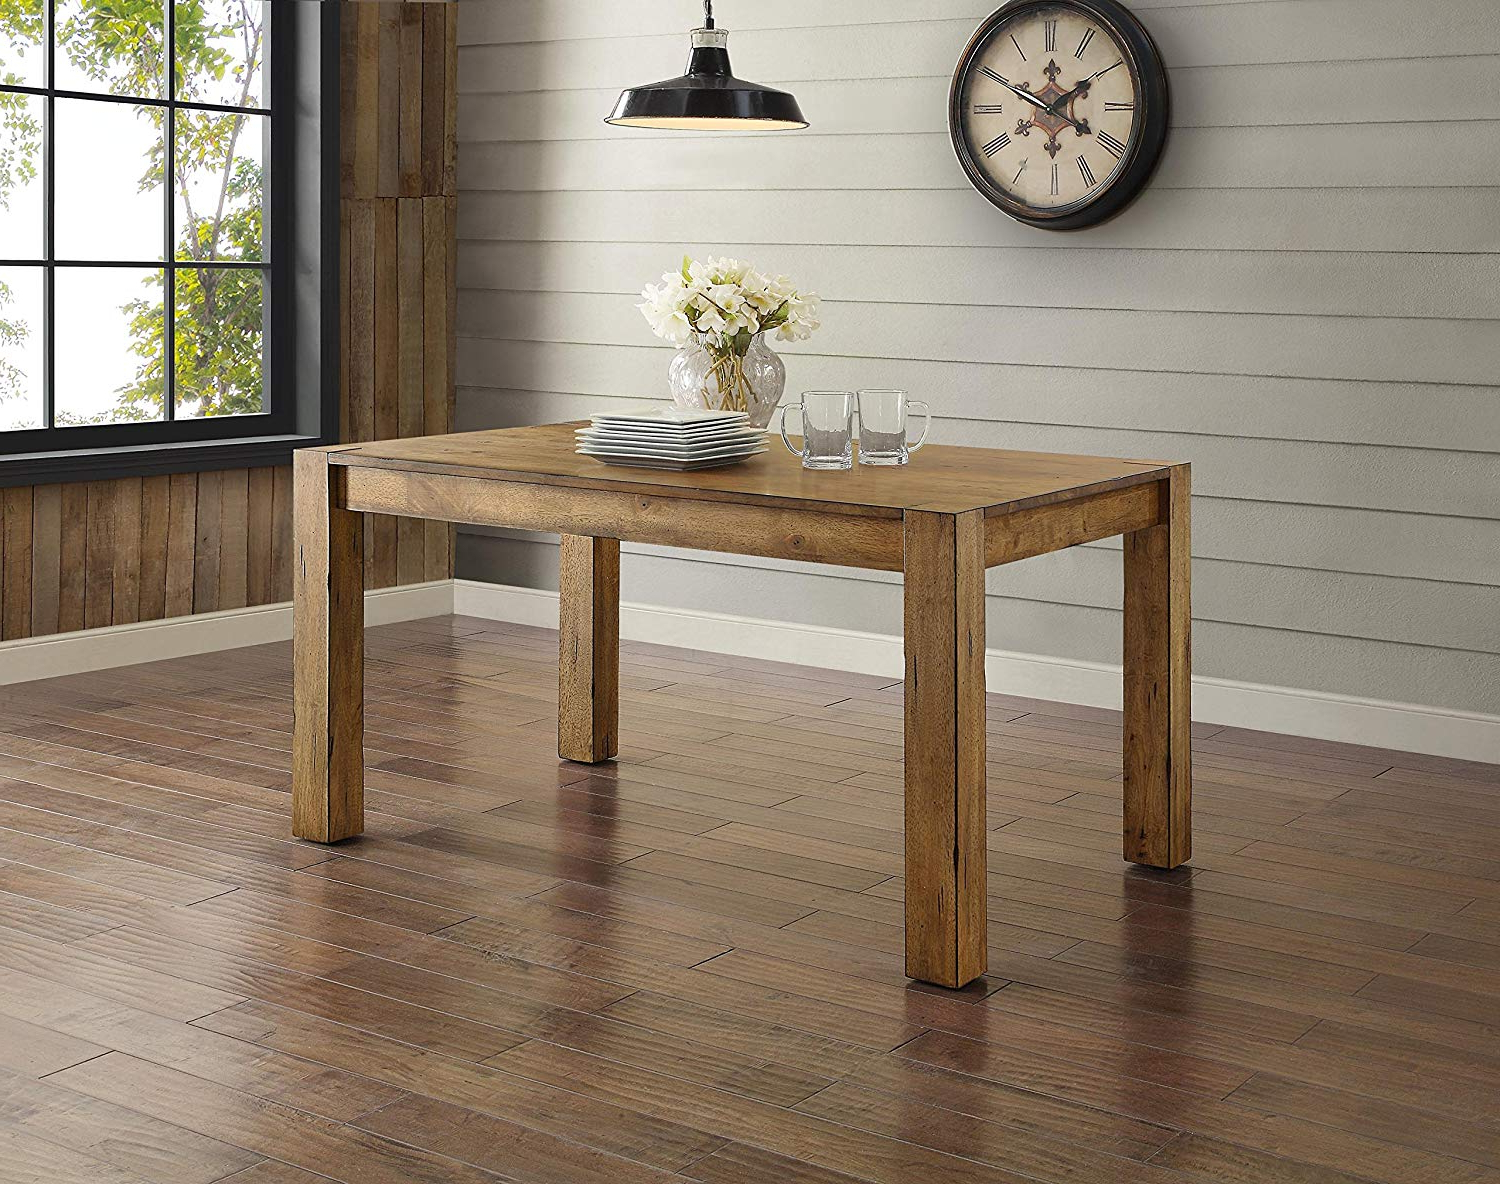 Amazon – Bryant Dining Table, Rustic Brown, Solid Wood Inside Current Acacia Dining Tables With Black Rocket Legs (View 8 of 30)